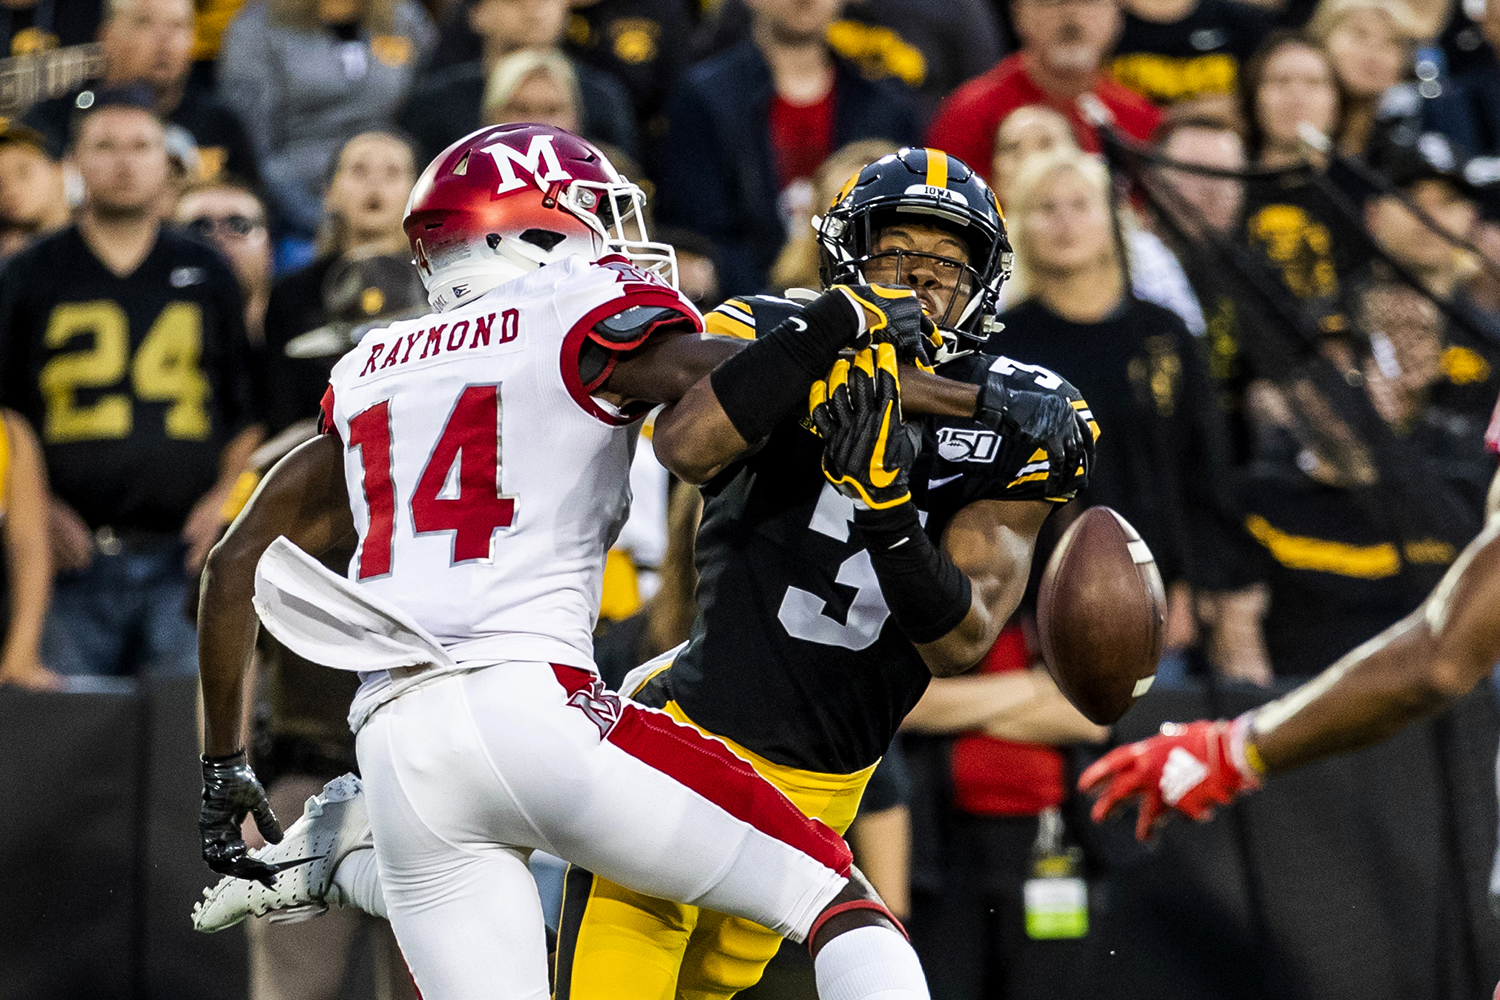 Iowa+wide+receiver+Tyrone+Tracy%2C+Jr.+loses+the+ball+during+the+Iowa+football+game+against+Miami+%28Ohio%29+at+Kinnick+Stadium+on+Saturday%2C+August+31%2C+2019.+The+Hawkeyes+defeated+the+Redhawks+38-14.